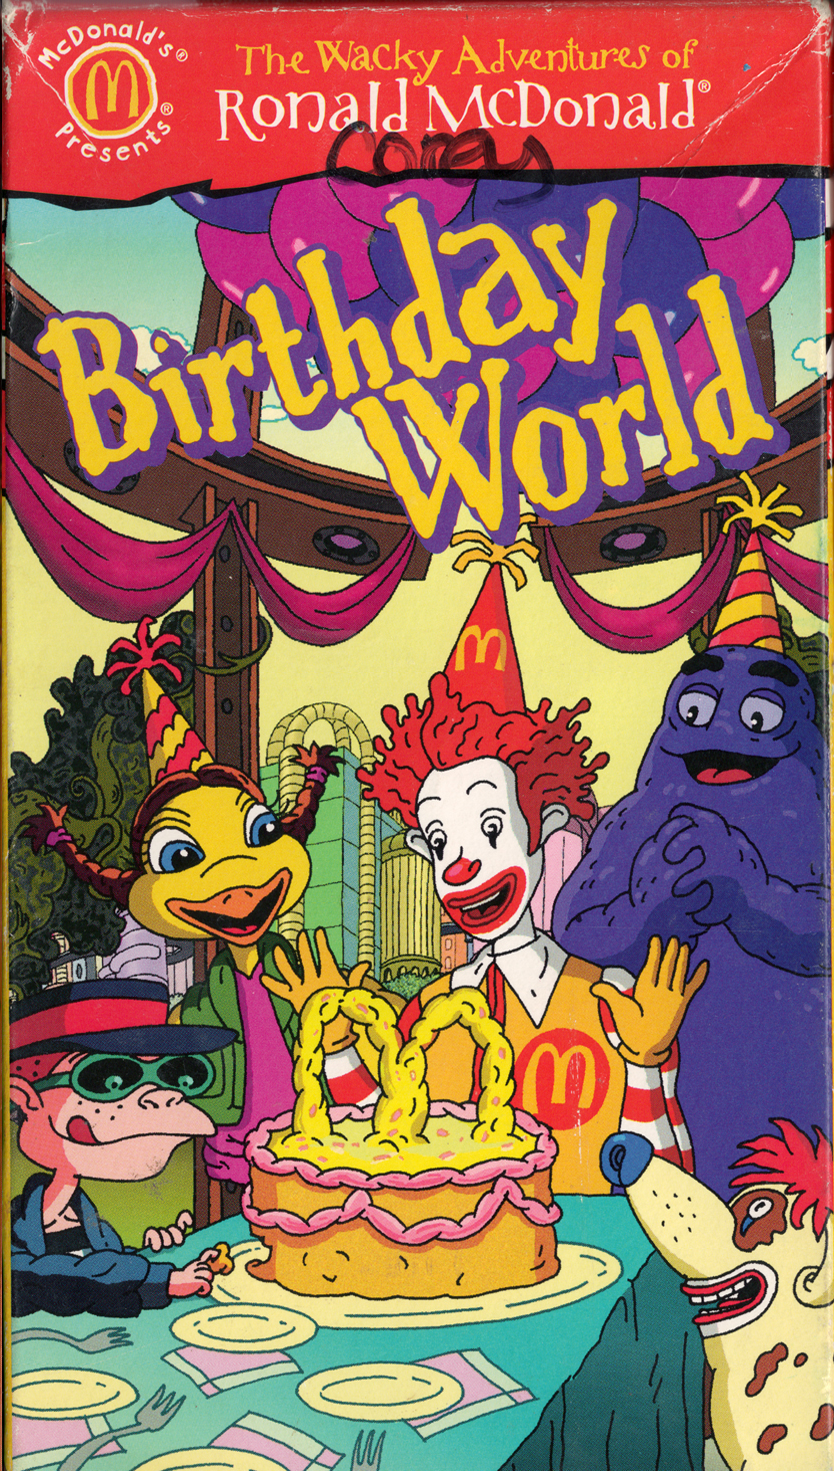 The Wacky Adventures of Ronald McDonald: Birthday World (2001)